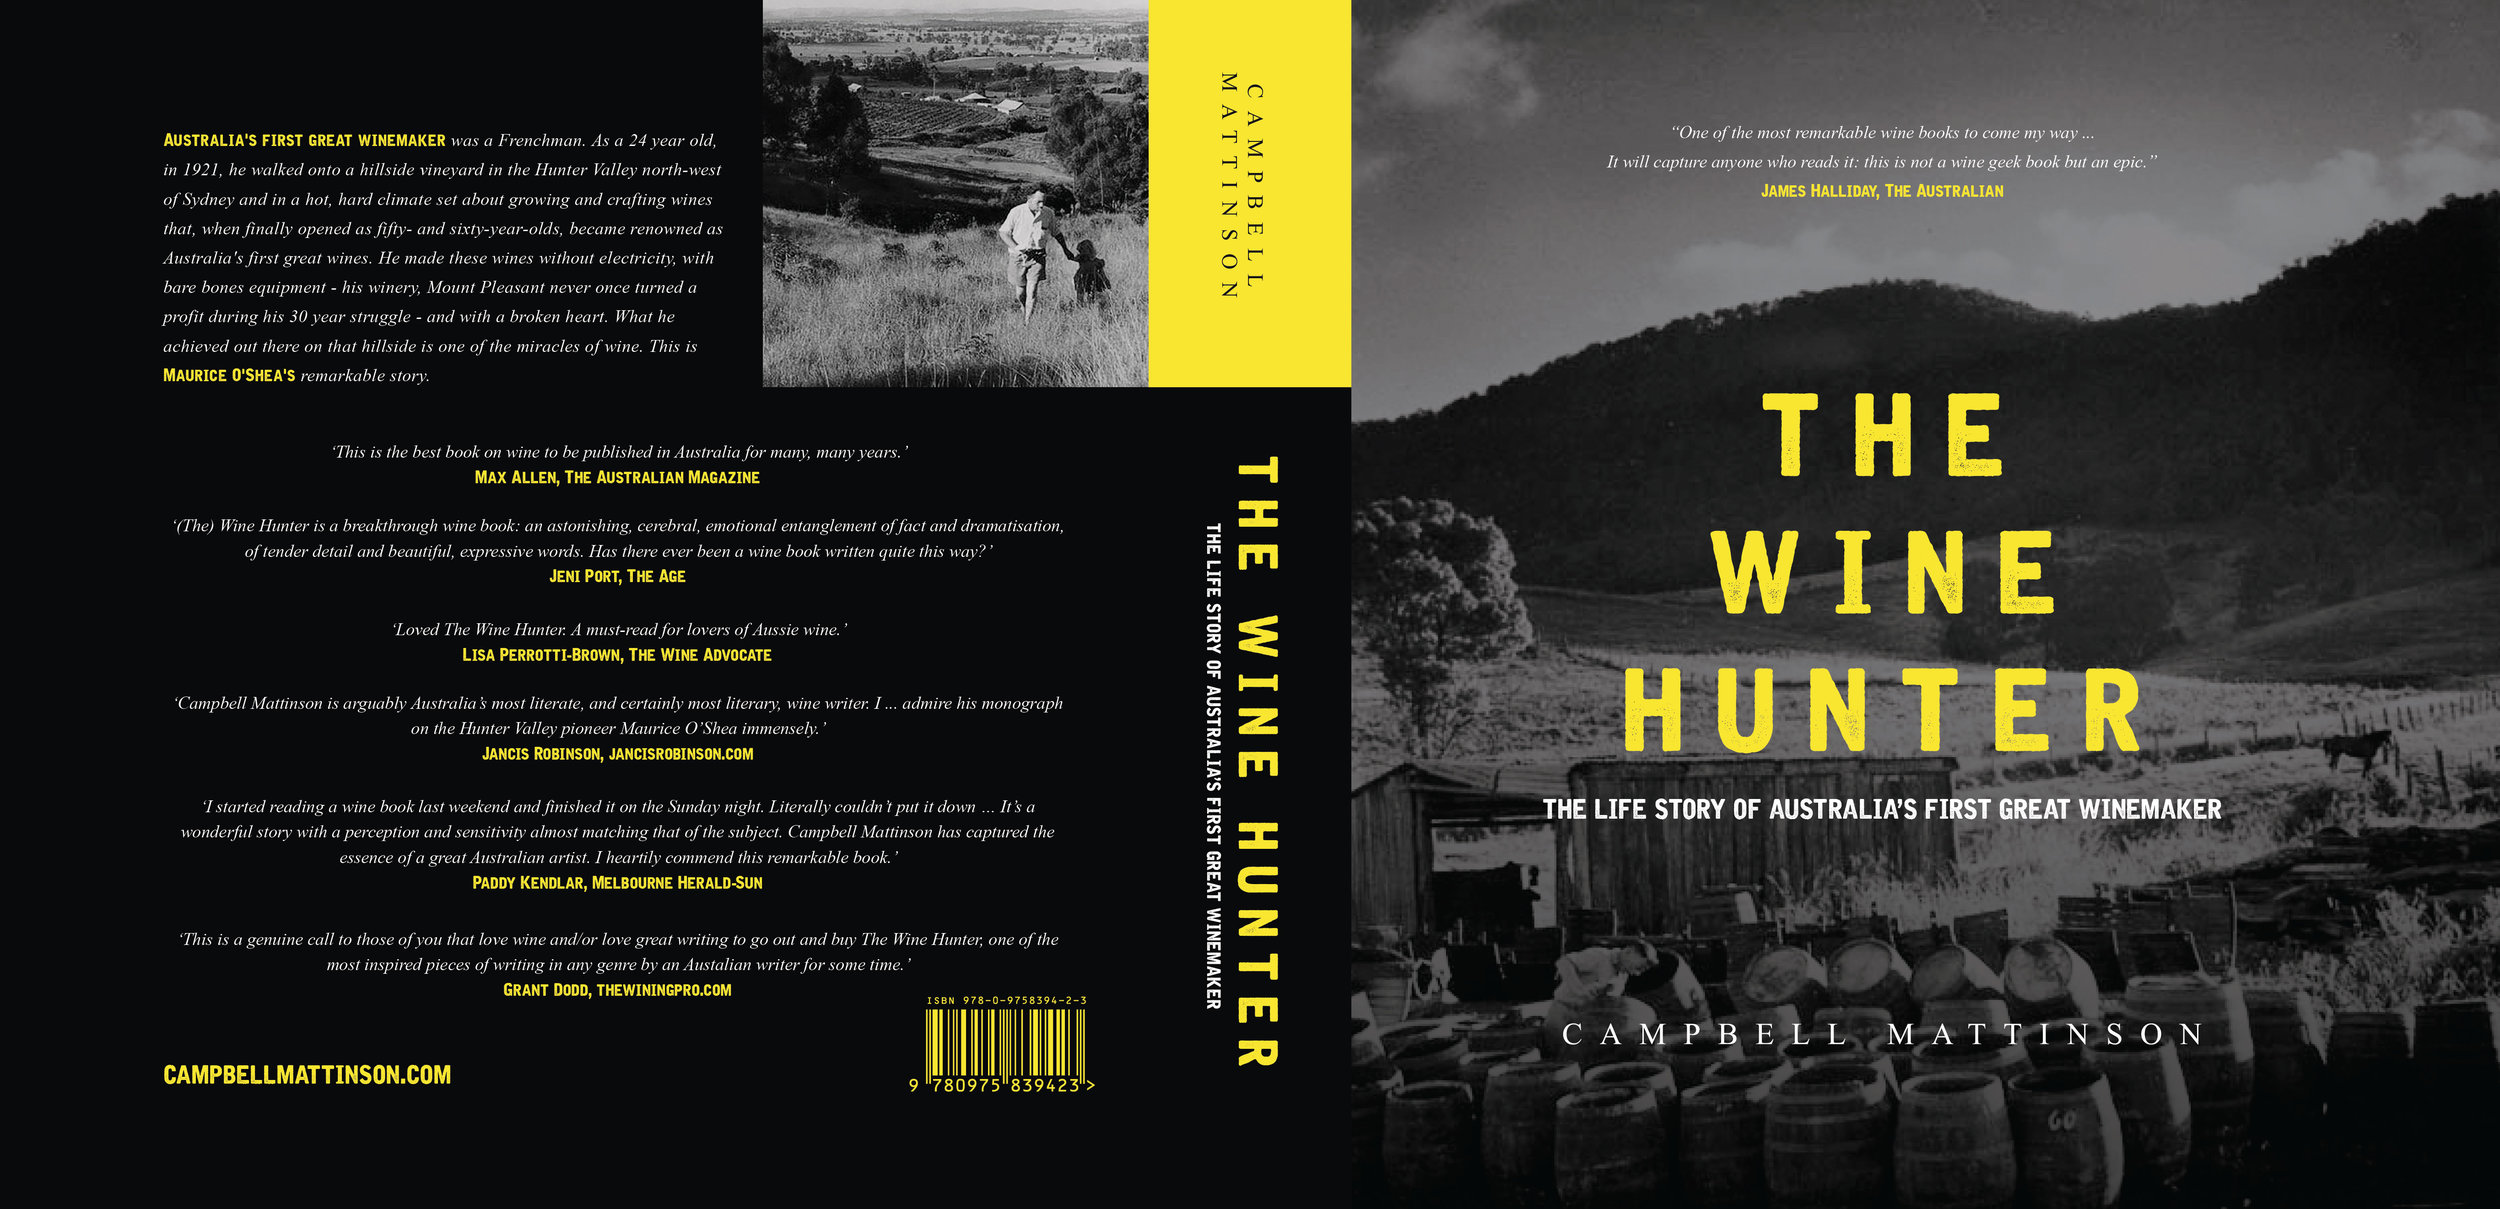 The WINE HUNTER: The Life Story of Australia's First Great Winemaker, Maurice O'Shea